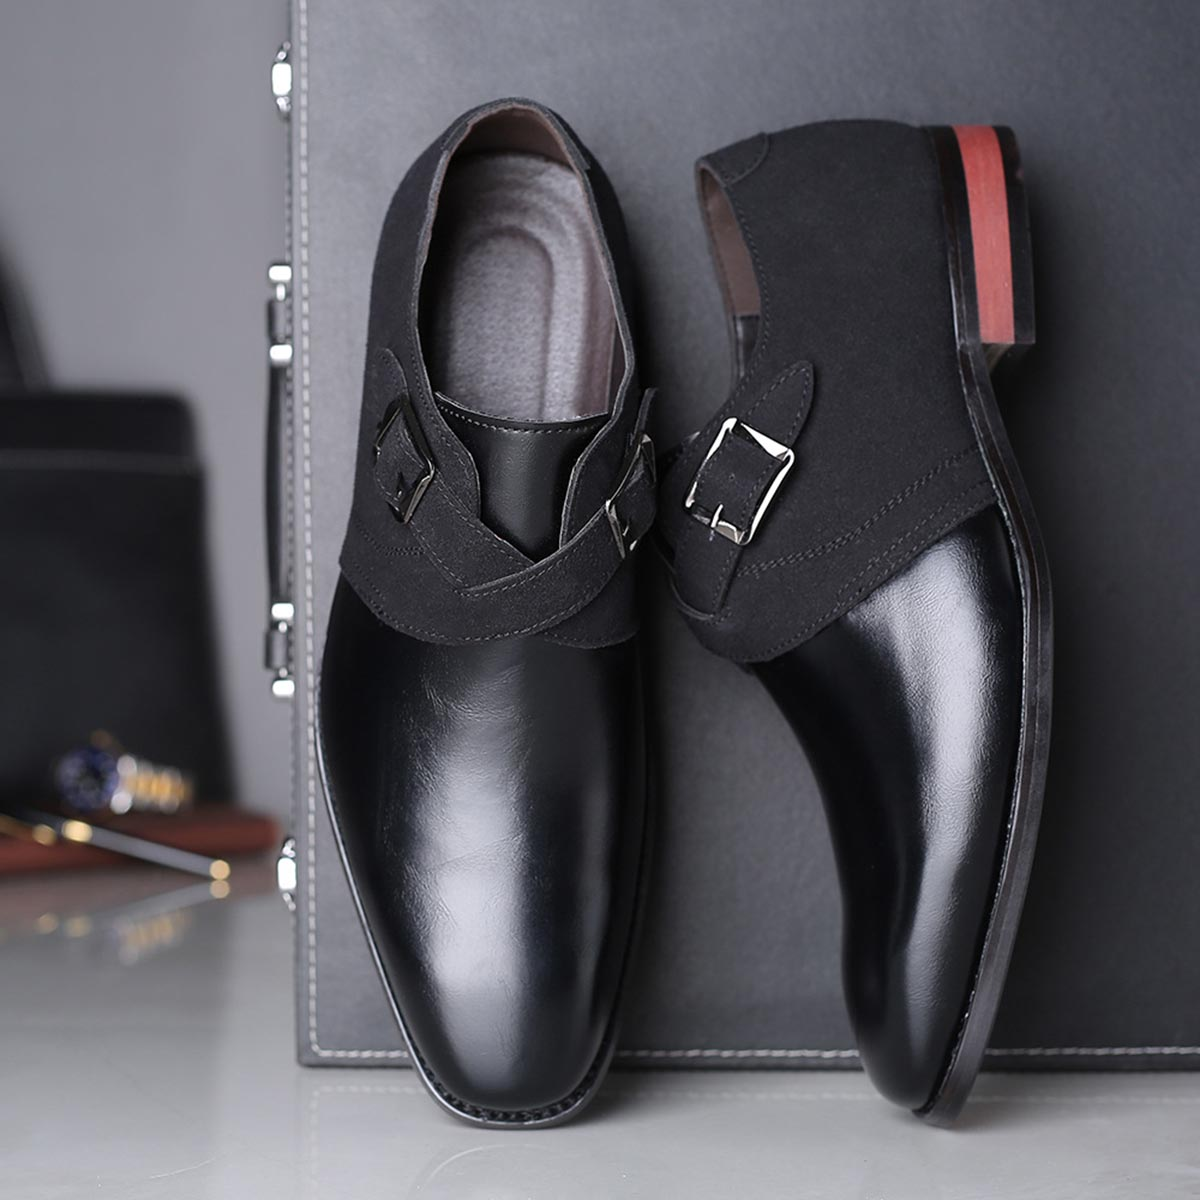 TaoBao PU Leather with Business Shoes